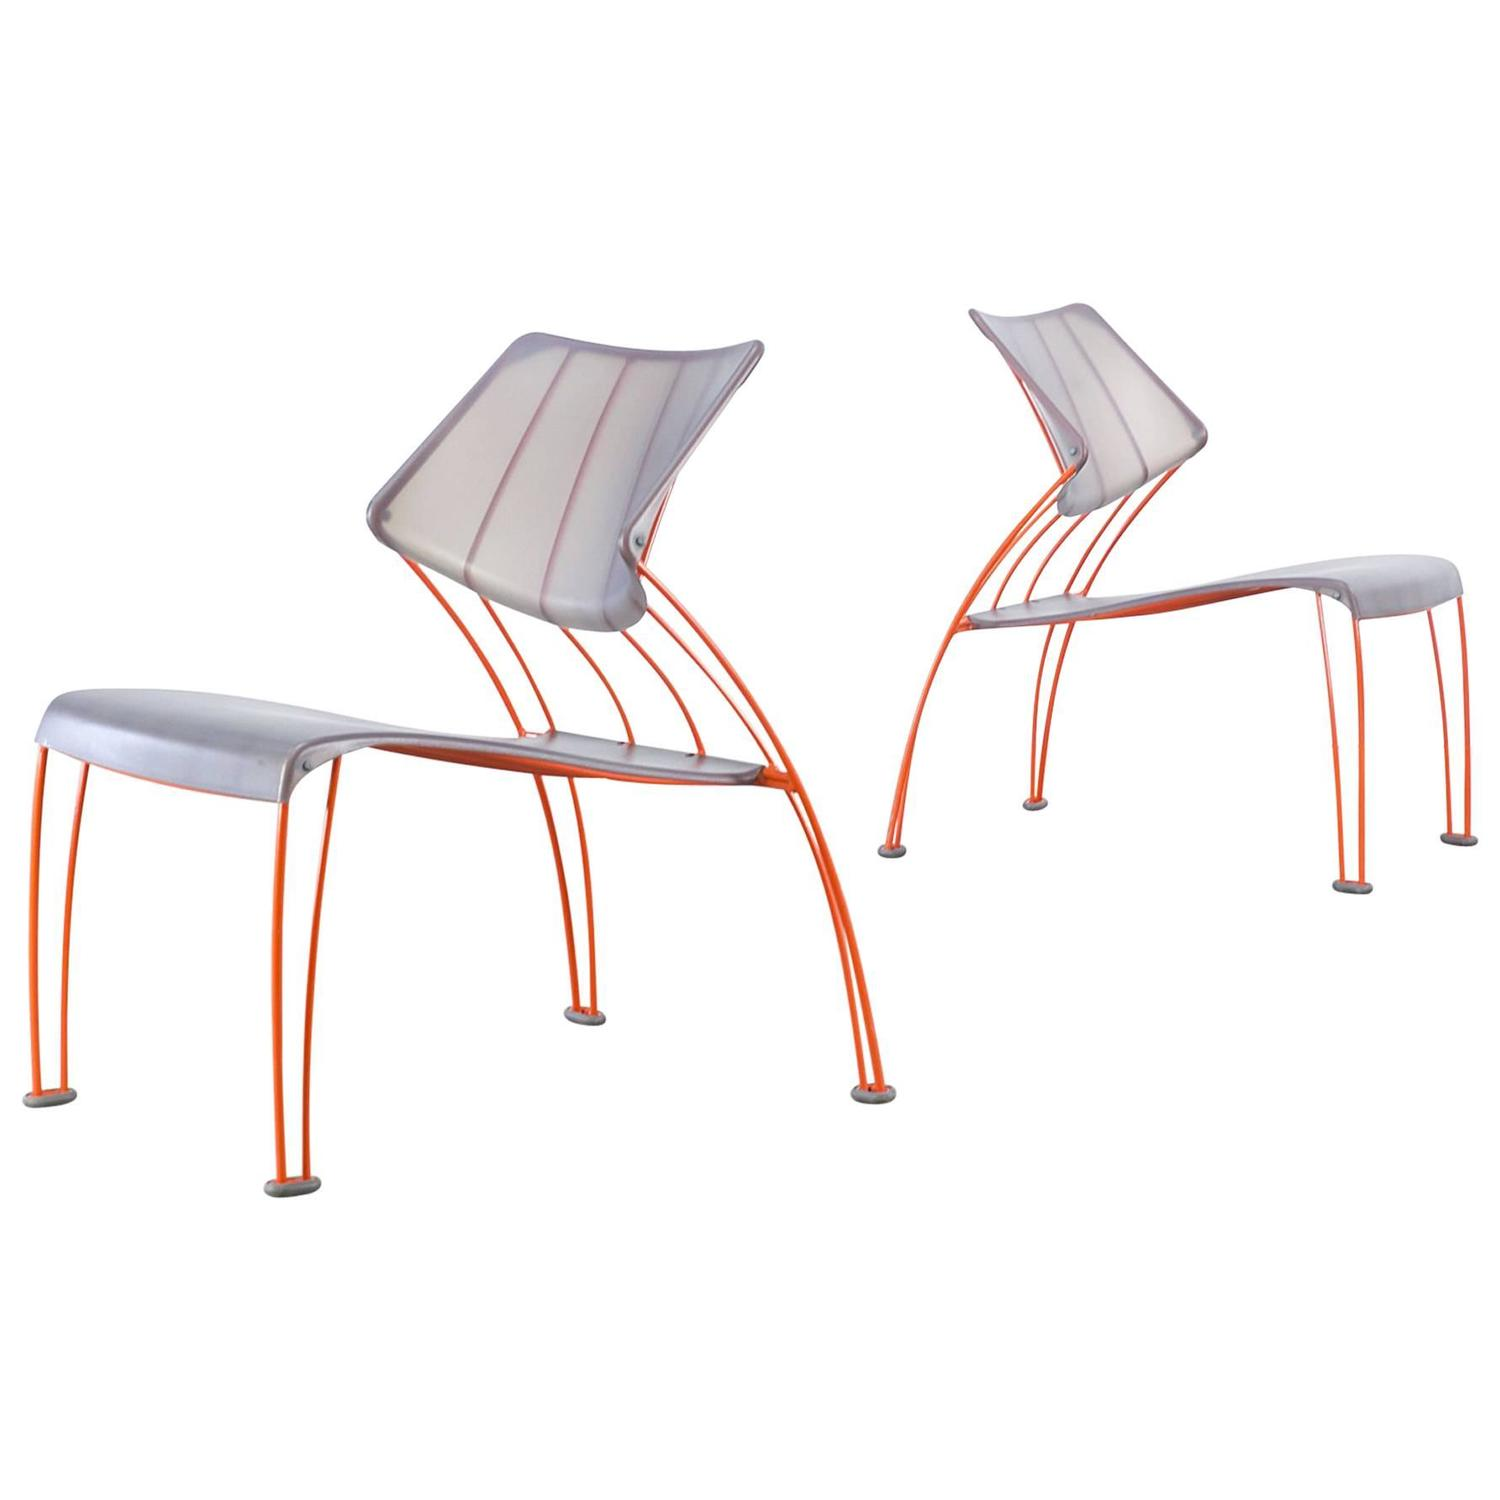 1990s Monika Mulder PS Hasslo Chairs for Ikea For Sale at 1stdibs